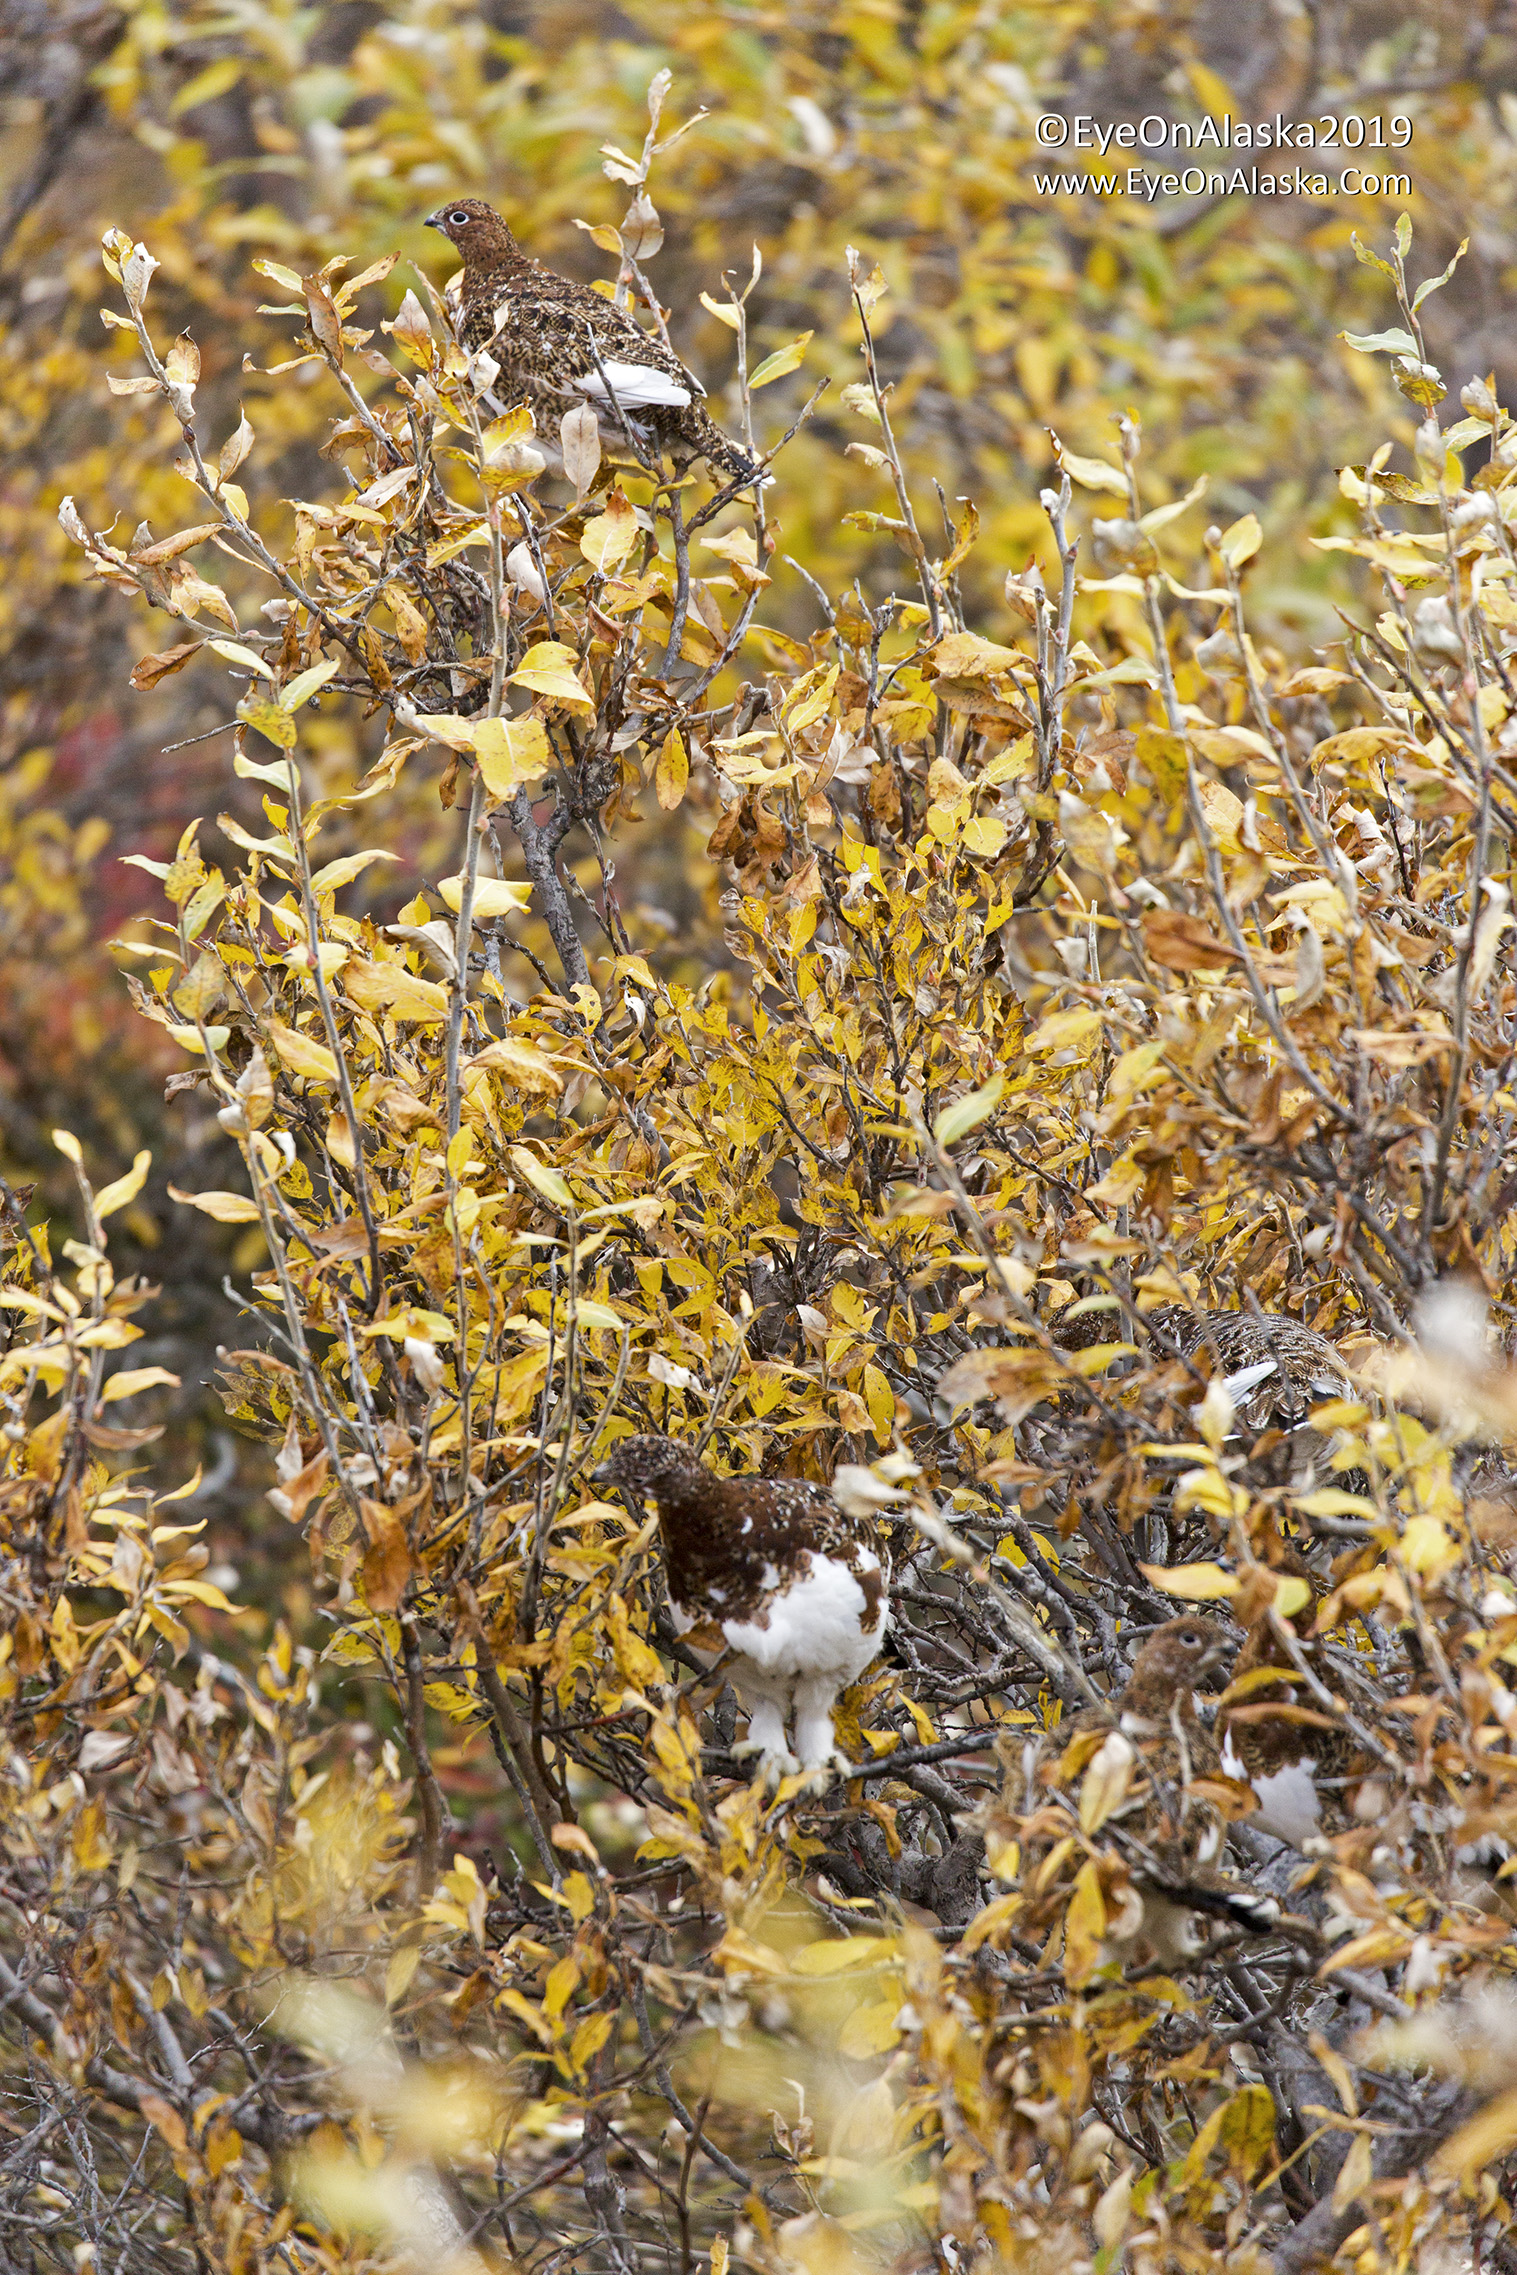 Okay, how many Ptarmigan do you see in this bush?